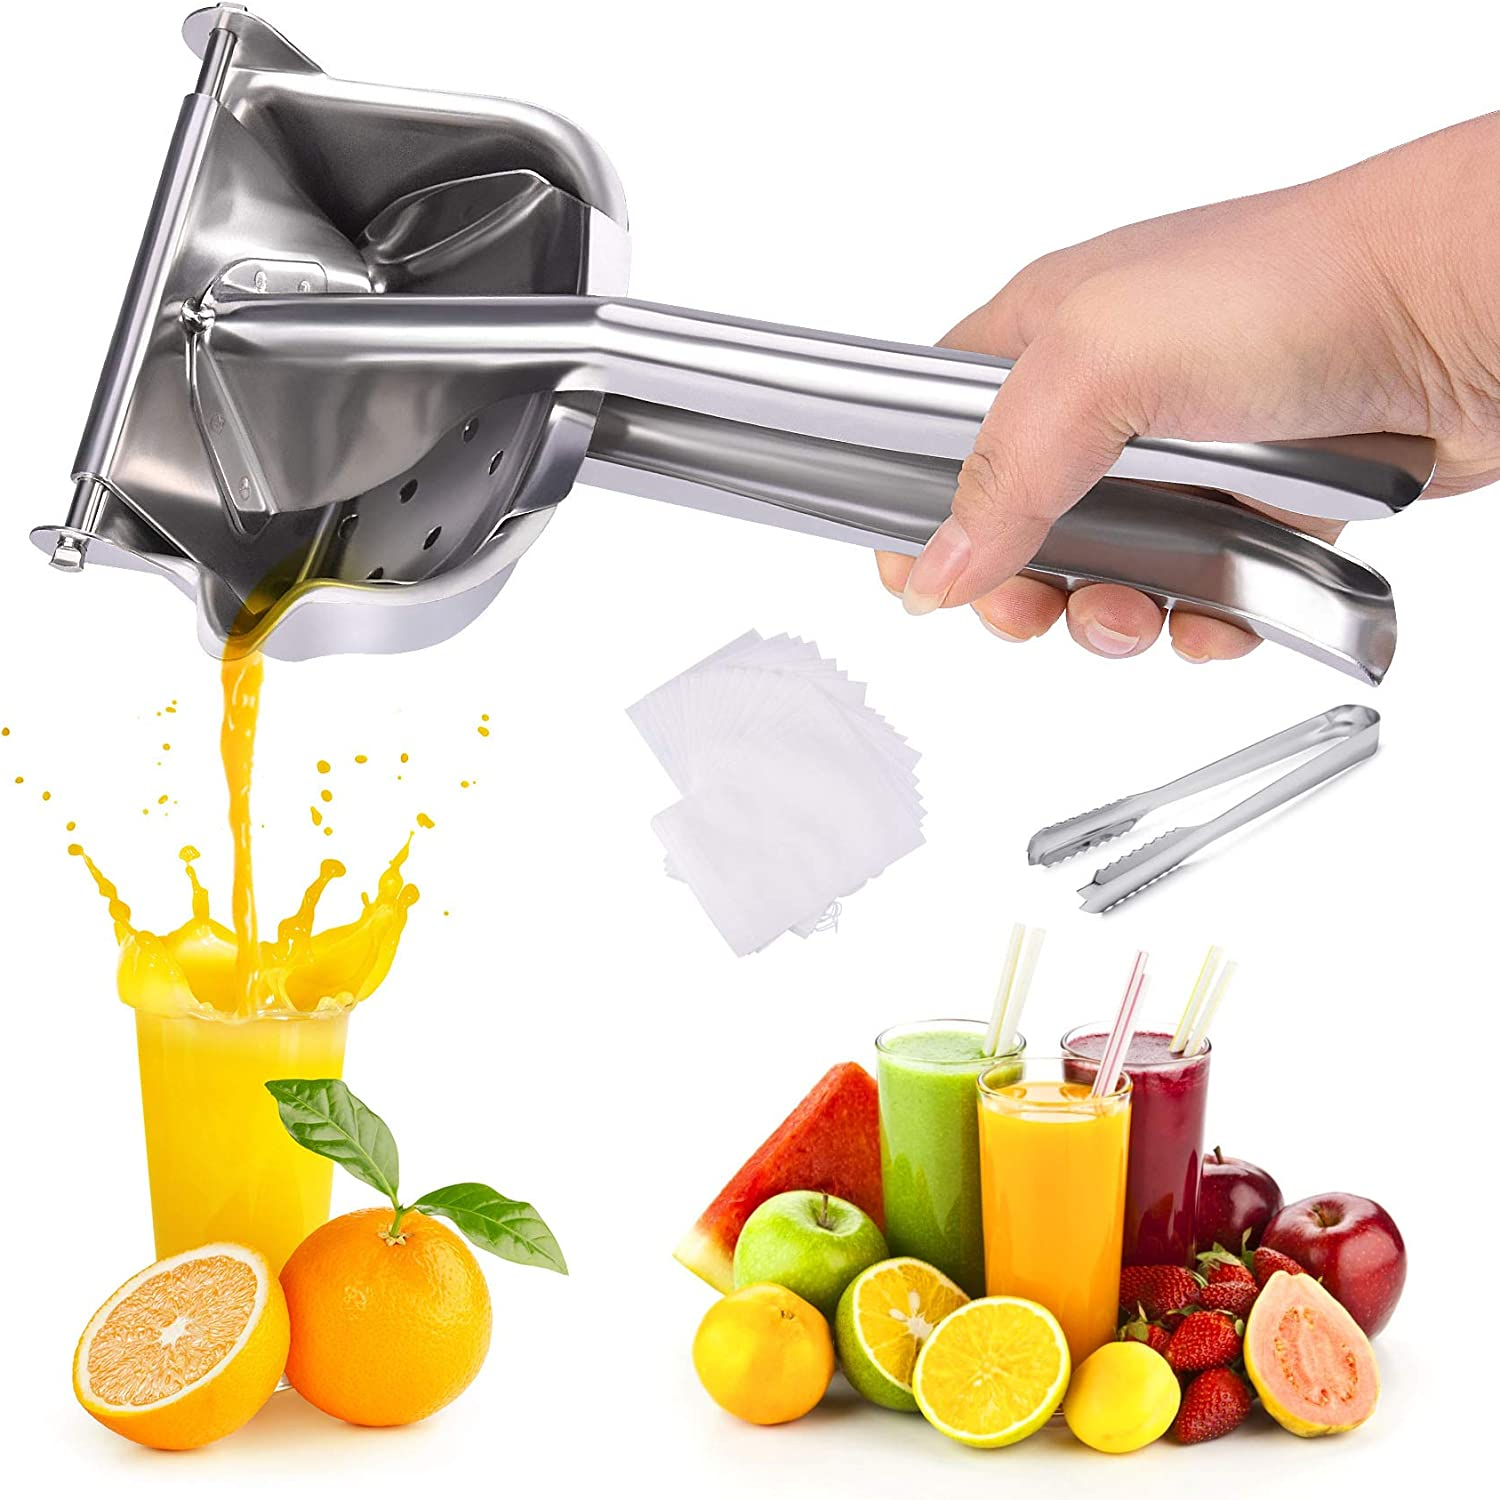 Slendor Manual Juicer Press Stainless Steel Citrus Lemon Squeezer with 60Pcs Filter Bags and Clip, Fruit Lime Juicer with Food-grade Juicing Bowl & Detachable Strainer for Oranges Lemons Extractor Tool